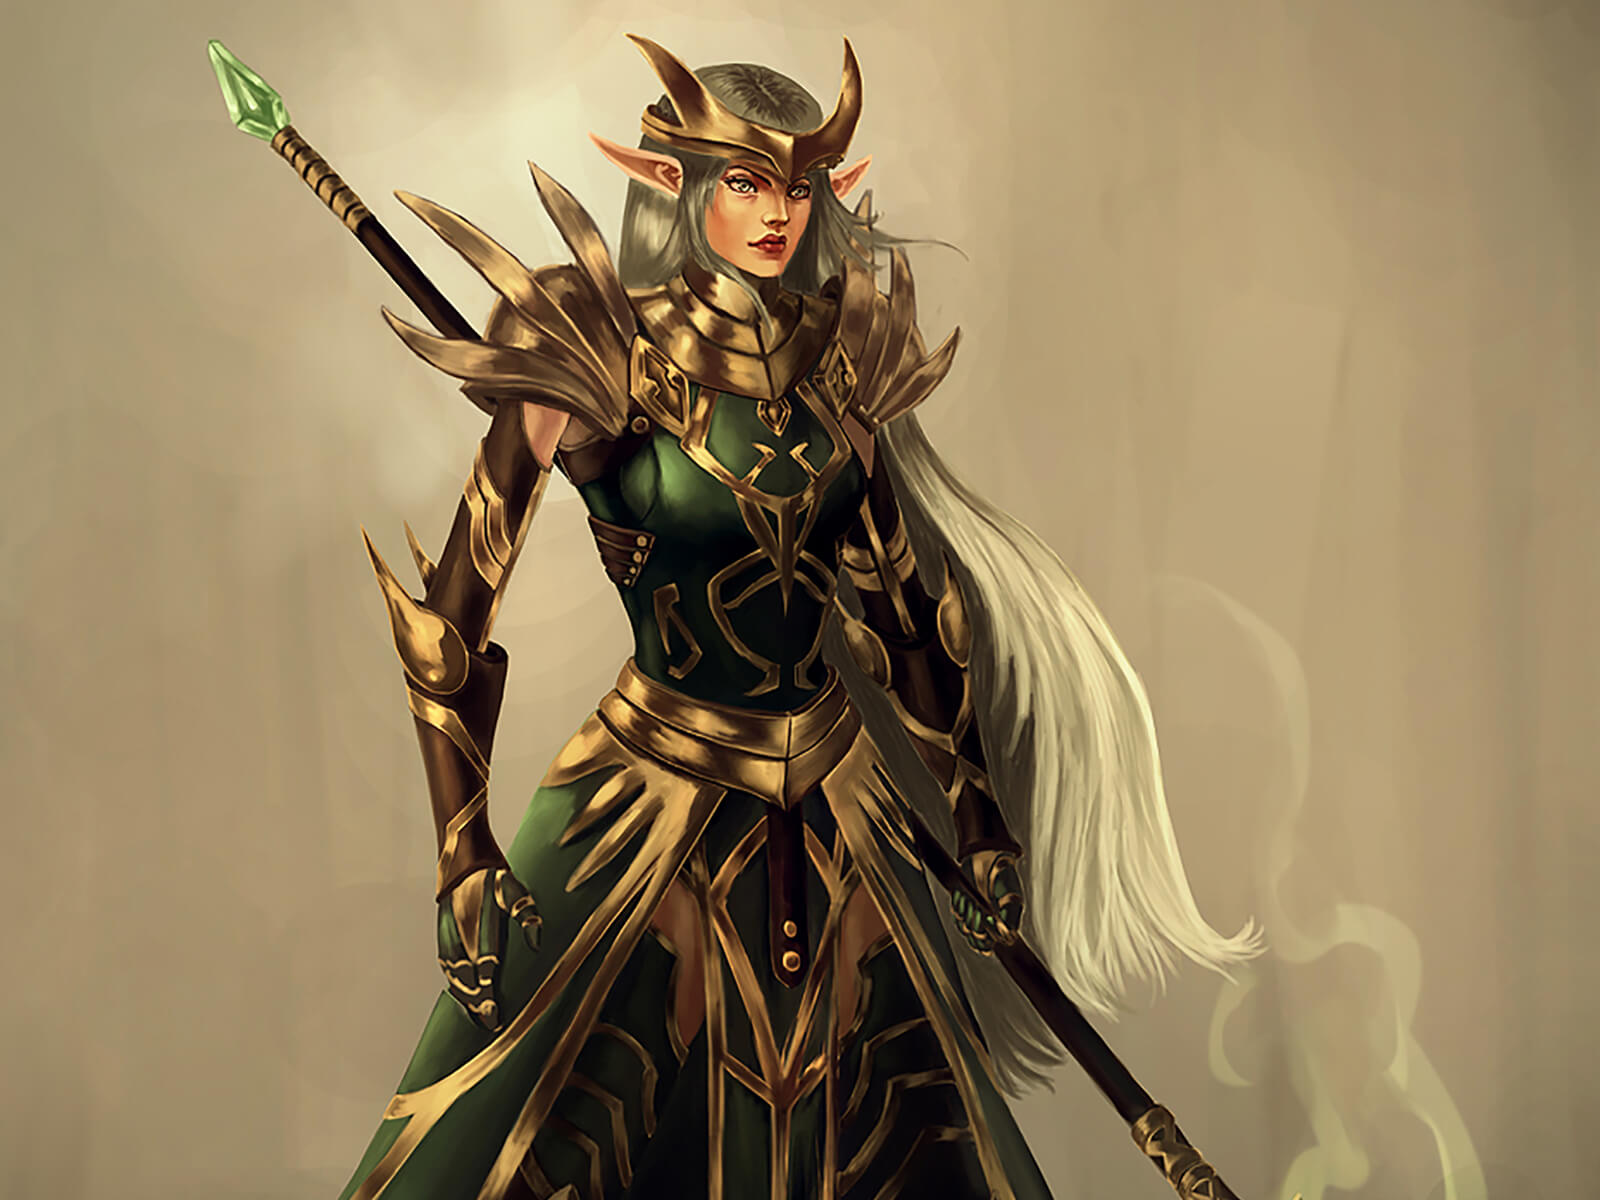 An elvish warrior stands in ornate green and gold armor holding a long staff topped by an emerald gem wafting magical vapors.